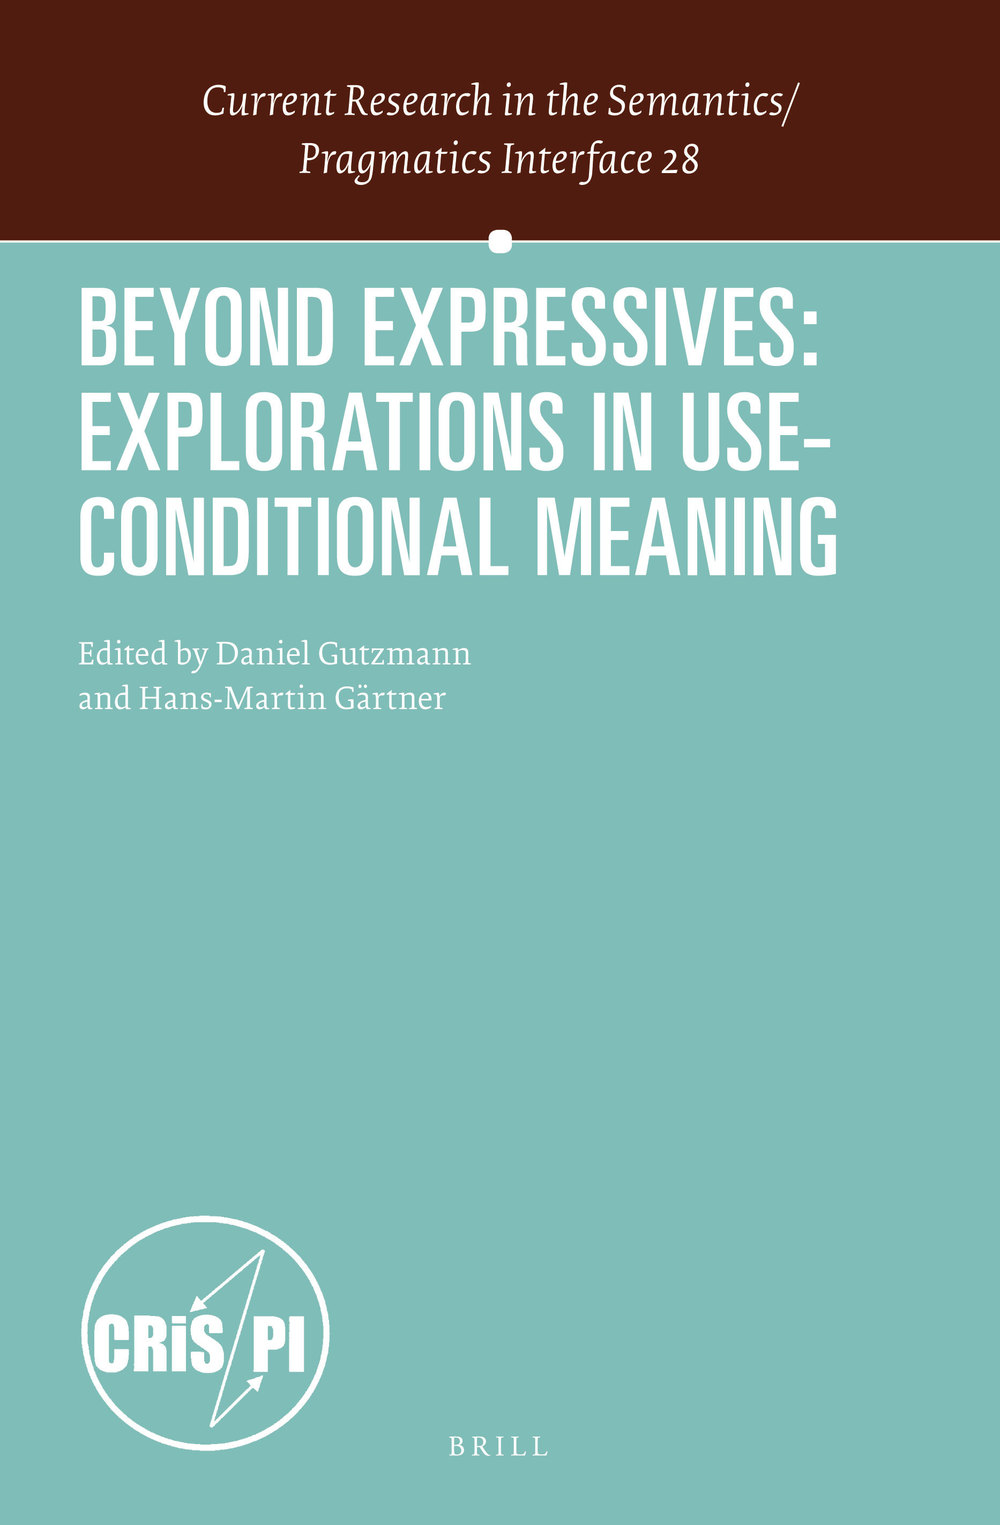 Beyond Expressives